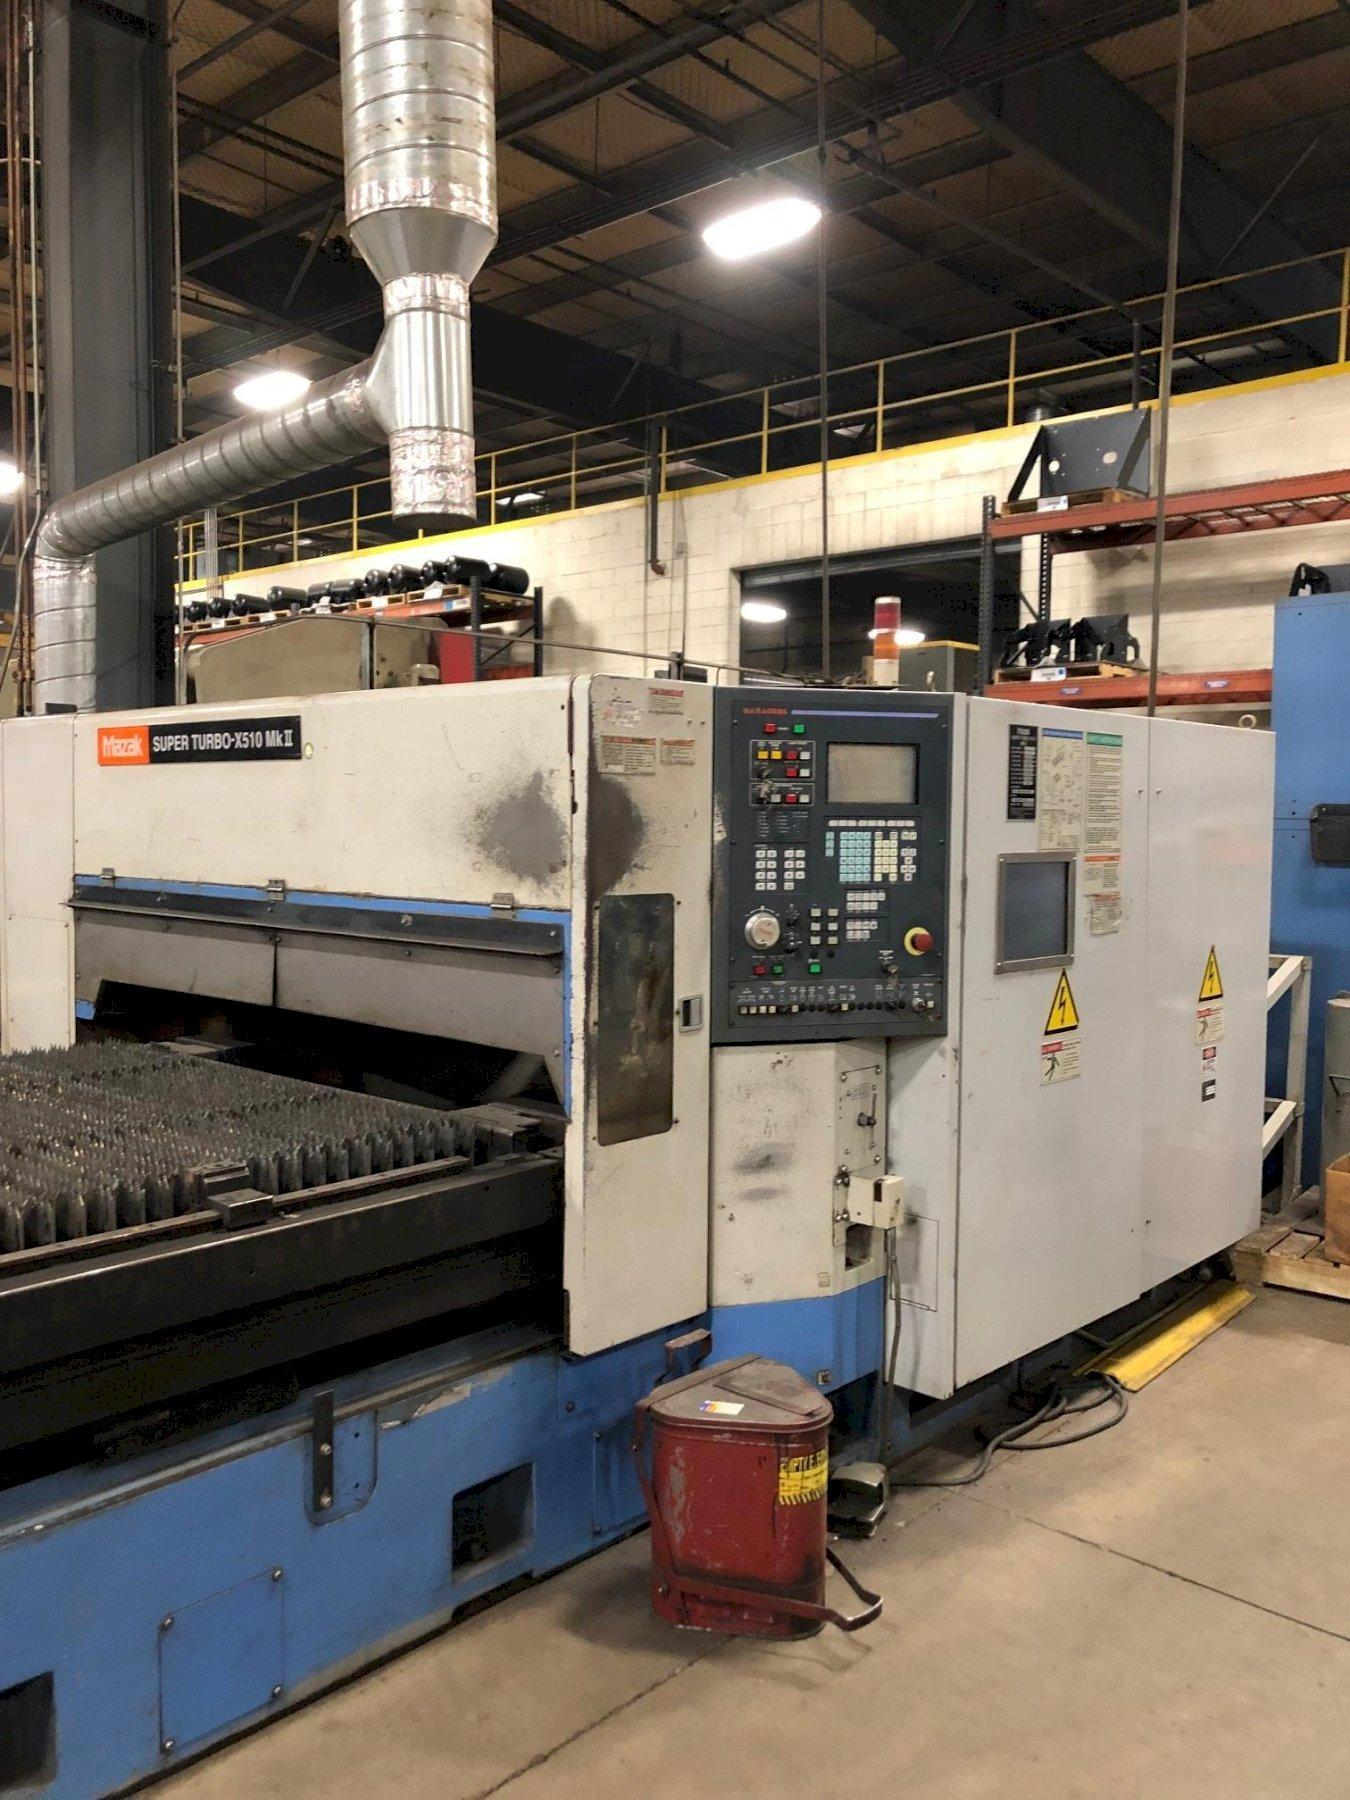 2001 Mazak STX510 Mark-II, 5x10, 4000 Watt Co2 Laser